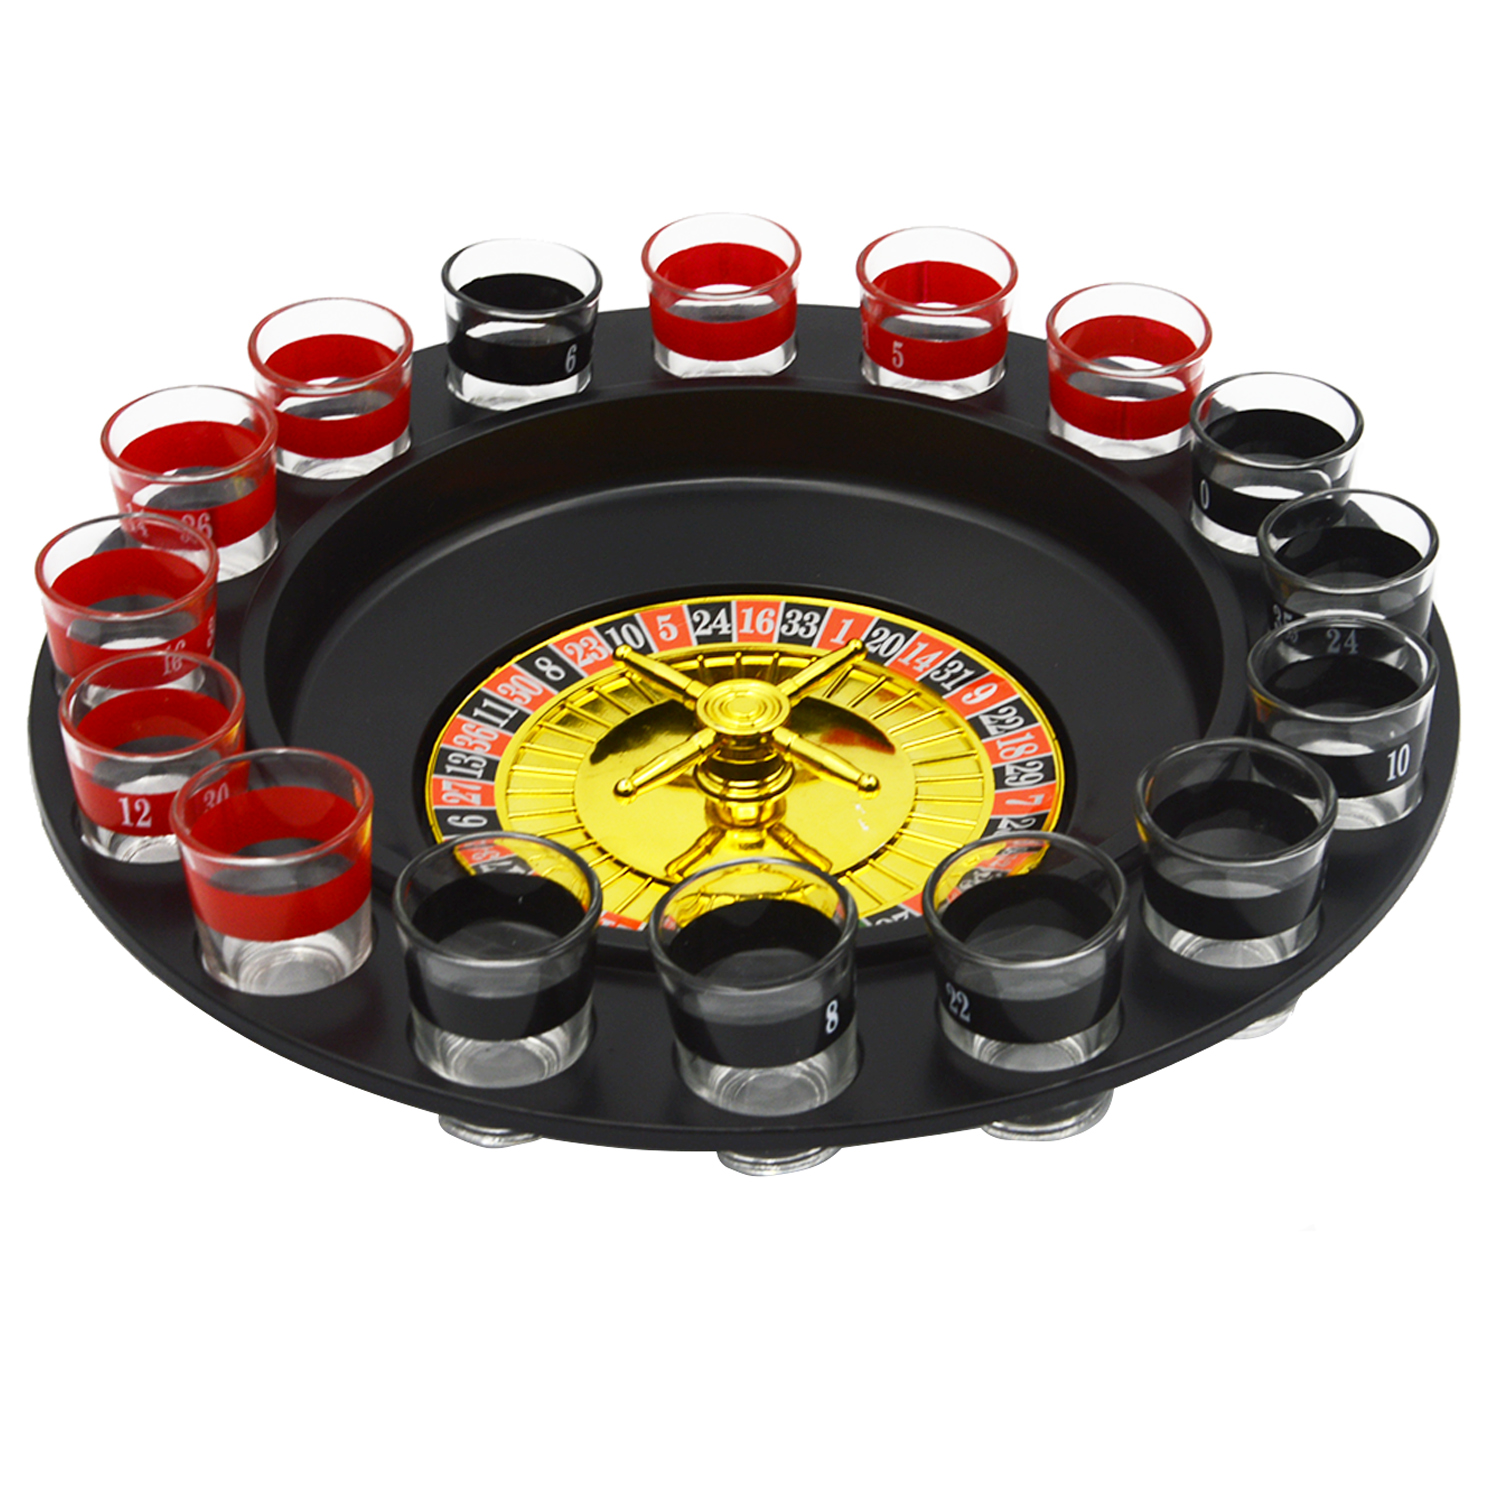 Besegad Spin Shot Glass Russian Roulette Wheel Turntable Fun Table Drinking Game Set with 2 Balls 16Glasses Novelty Drinking Set russian roulette party balloon gun model creative adult toys family interaction game lucky roulette tricky fun gifts interactive